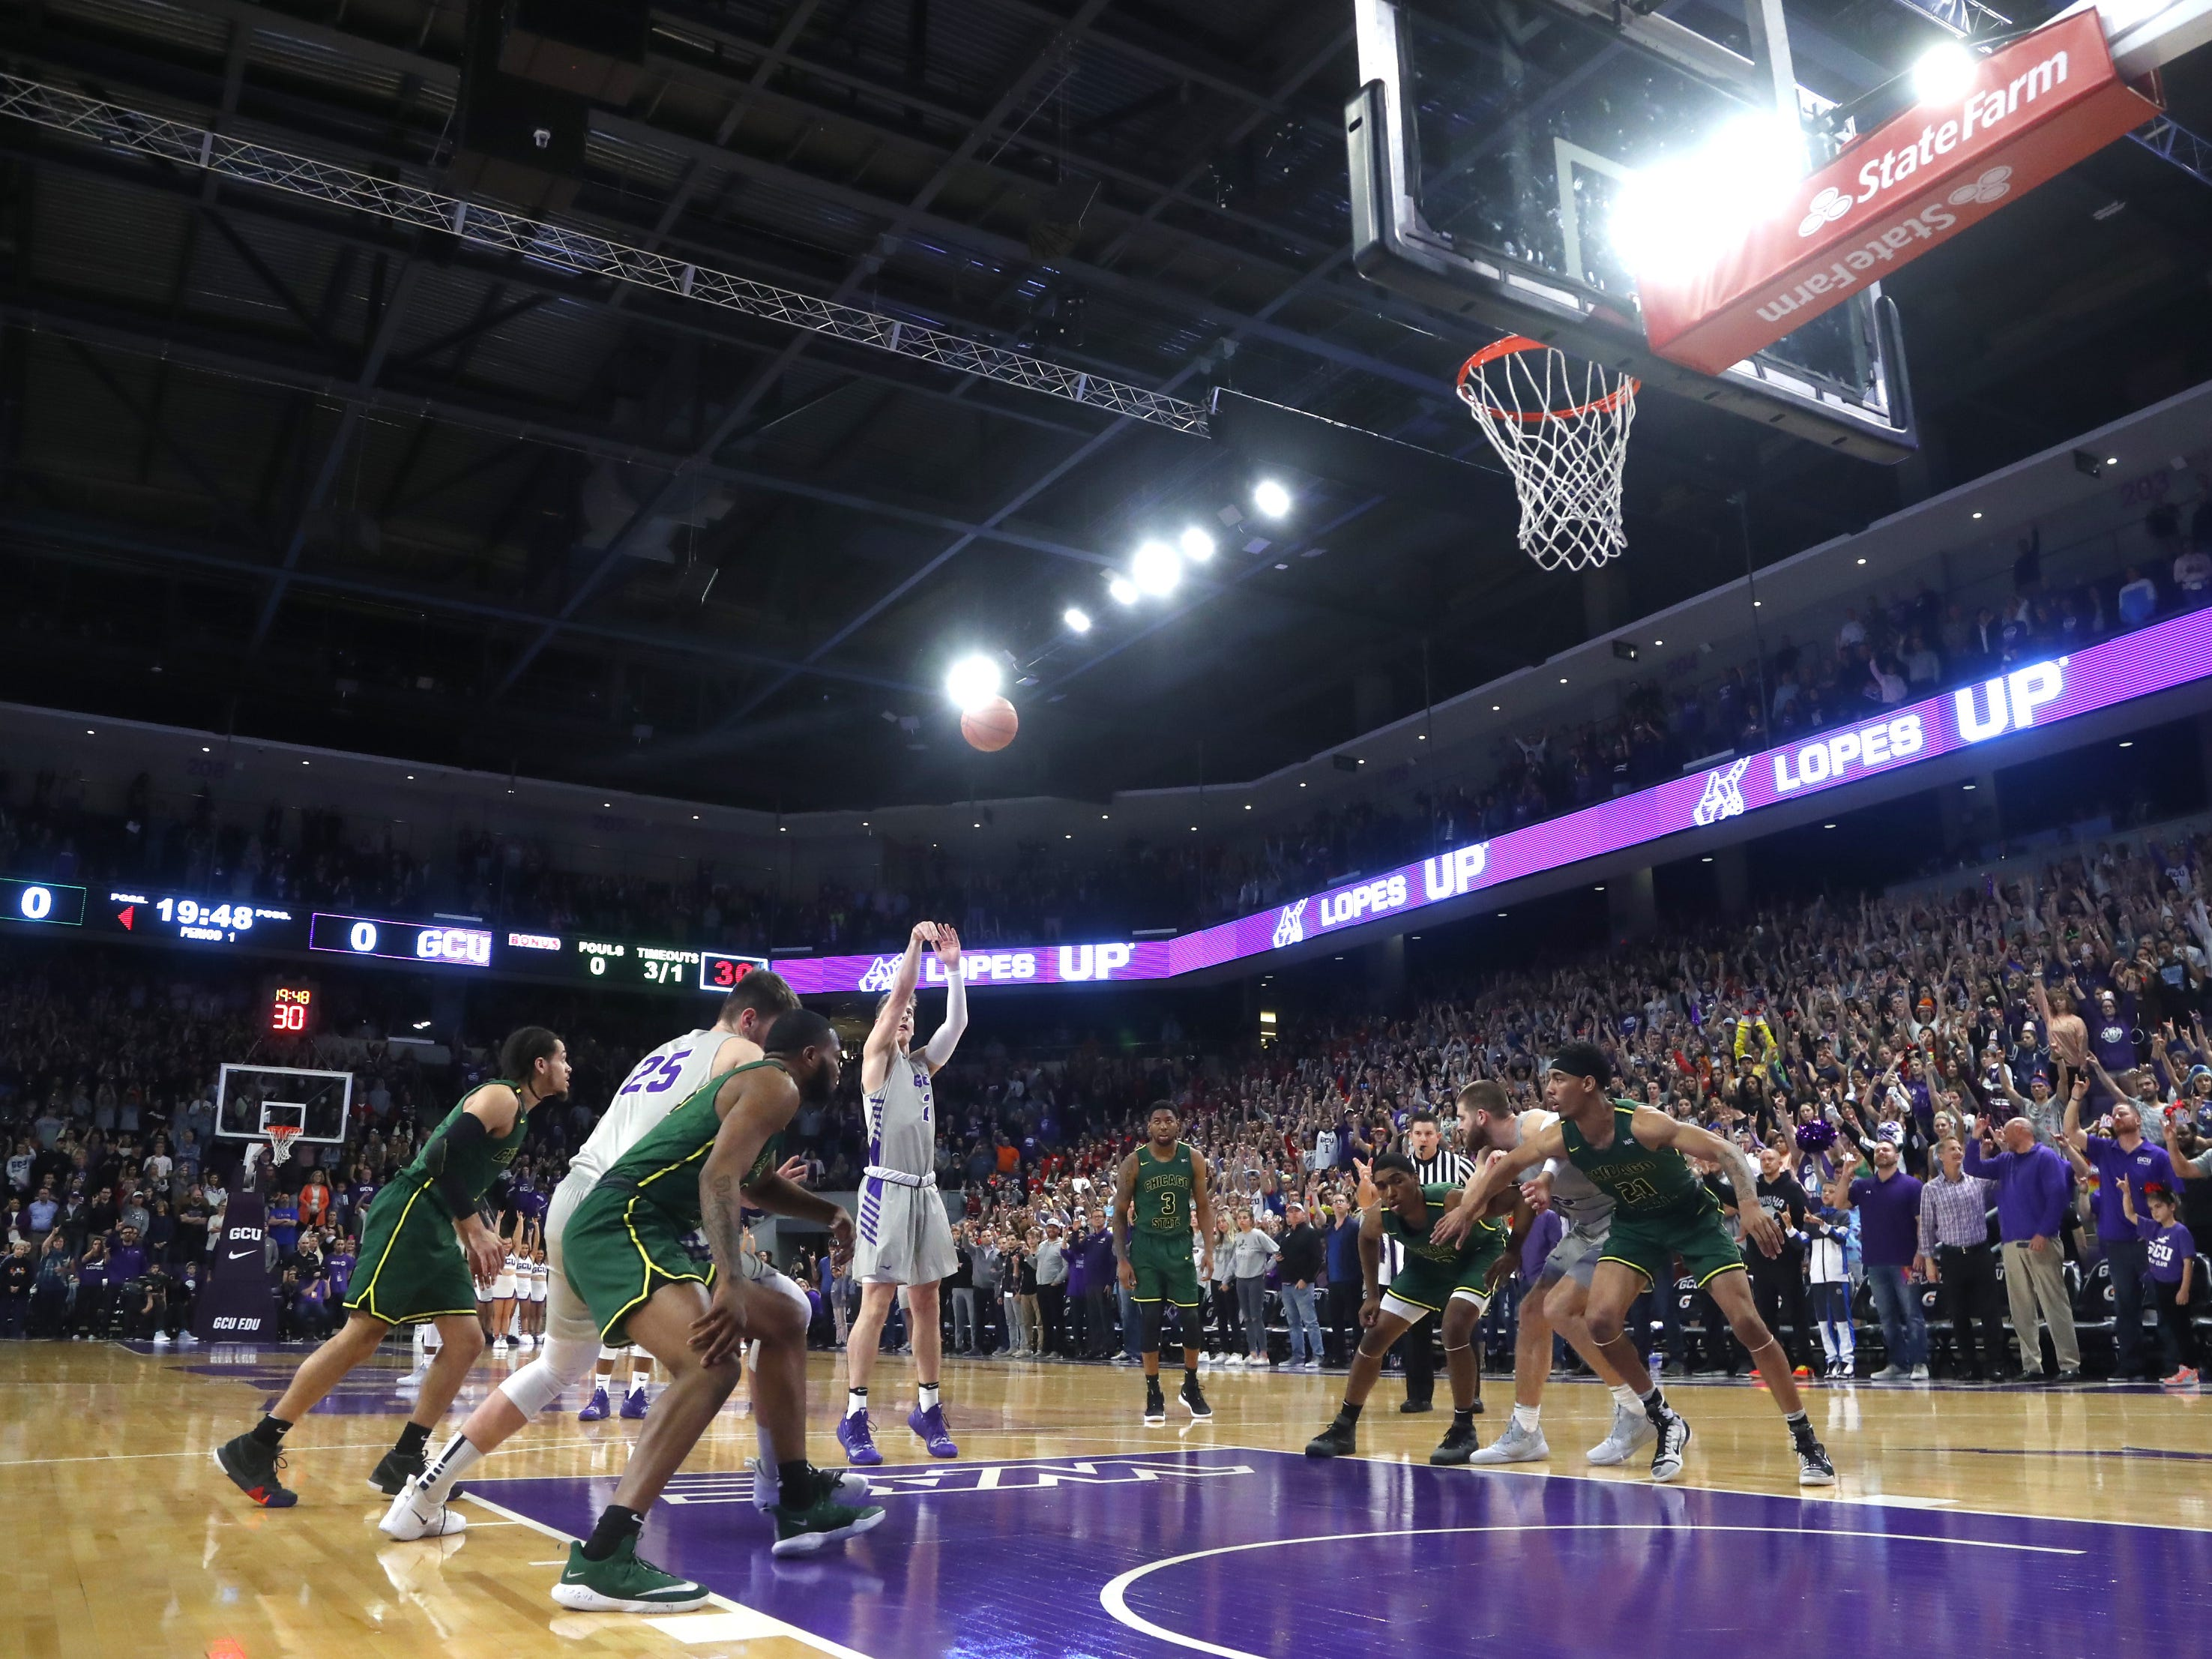 GCU's Trey Dreschel (2) shoots a free throw against Chicago State University during the first half at Grand Canyon University Arena in Phoenix, Ariz. on January 17, 2019.